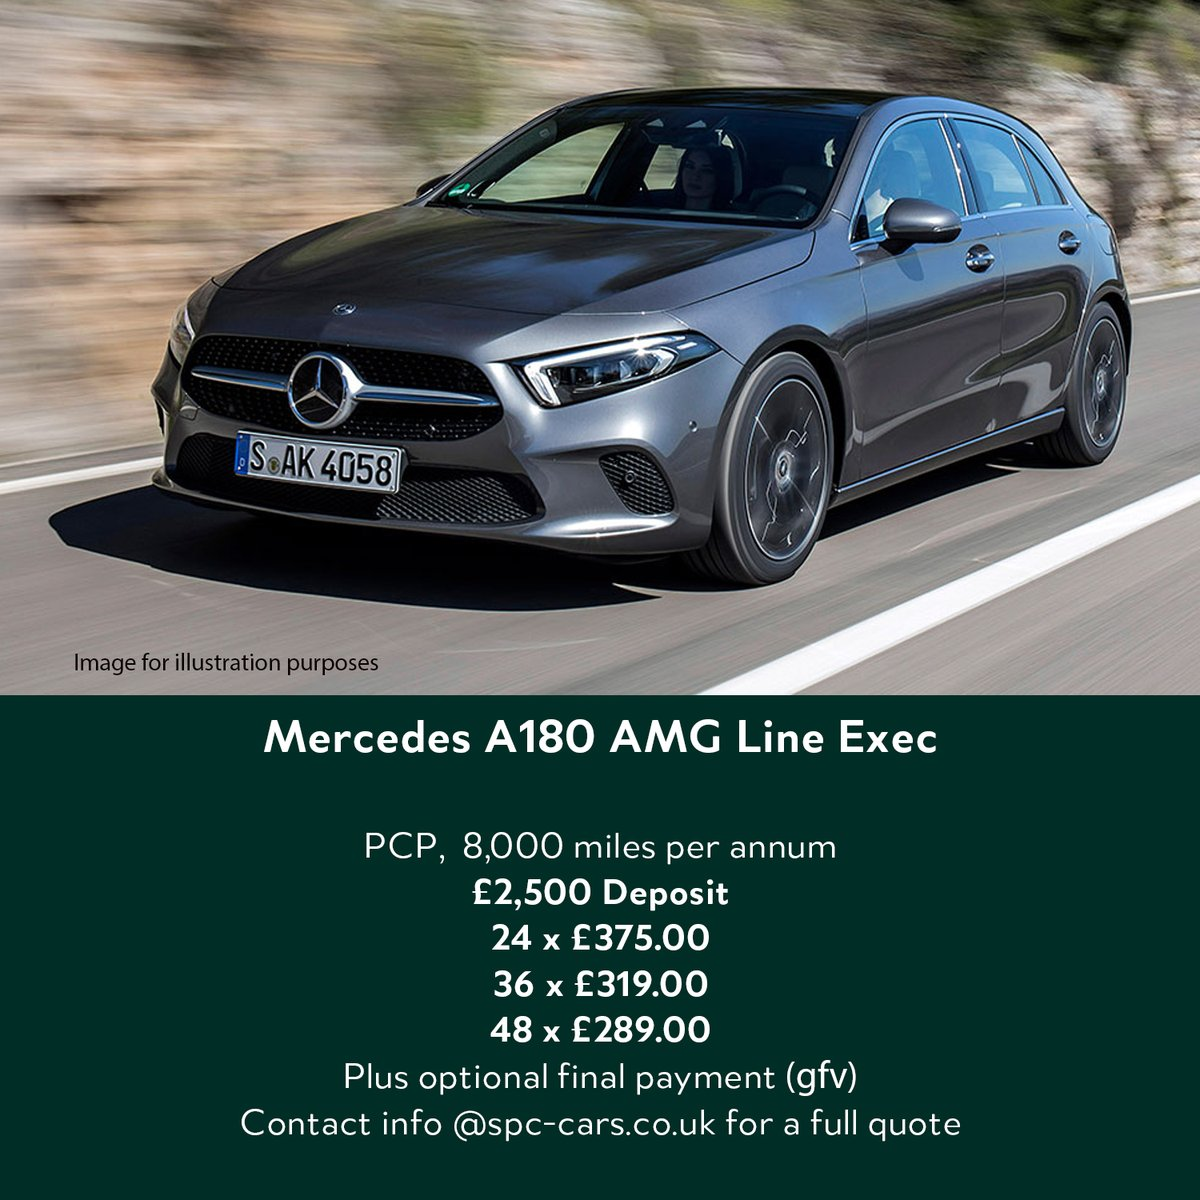 These are one of the best compact family hatchbacks on the market.  Stock available for delivery April May or June.  Contact info@spc-cars.co.uk to secure yours     #mercedes #aclass #amg #familycar #hatchback #economical #pfa #efl #spccars #newcardeals https://t.co/zsmETpt2m0